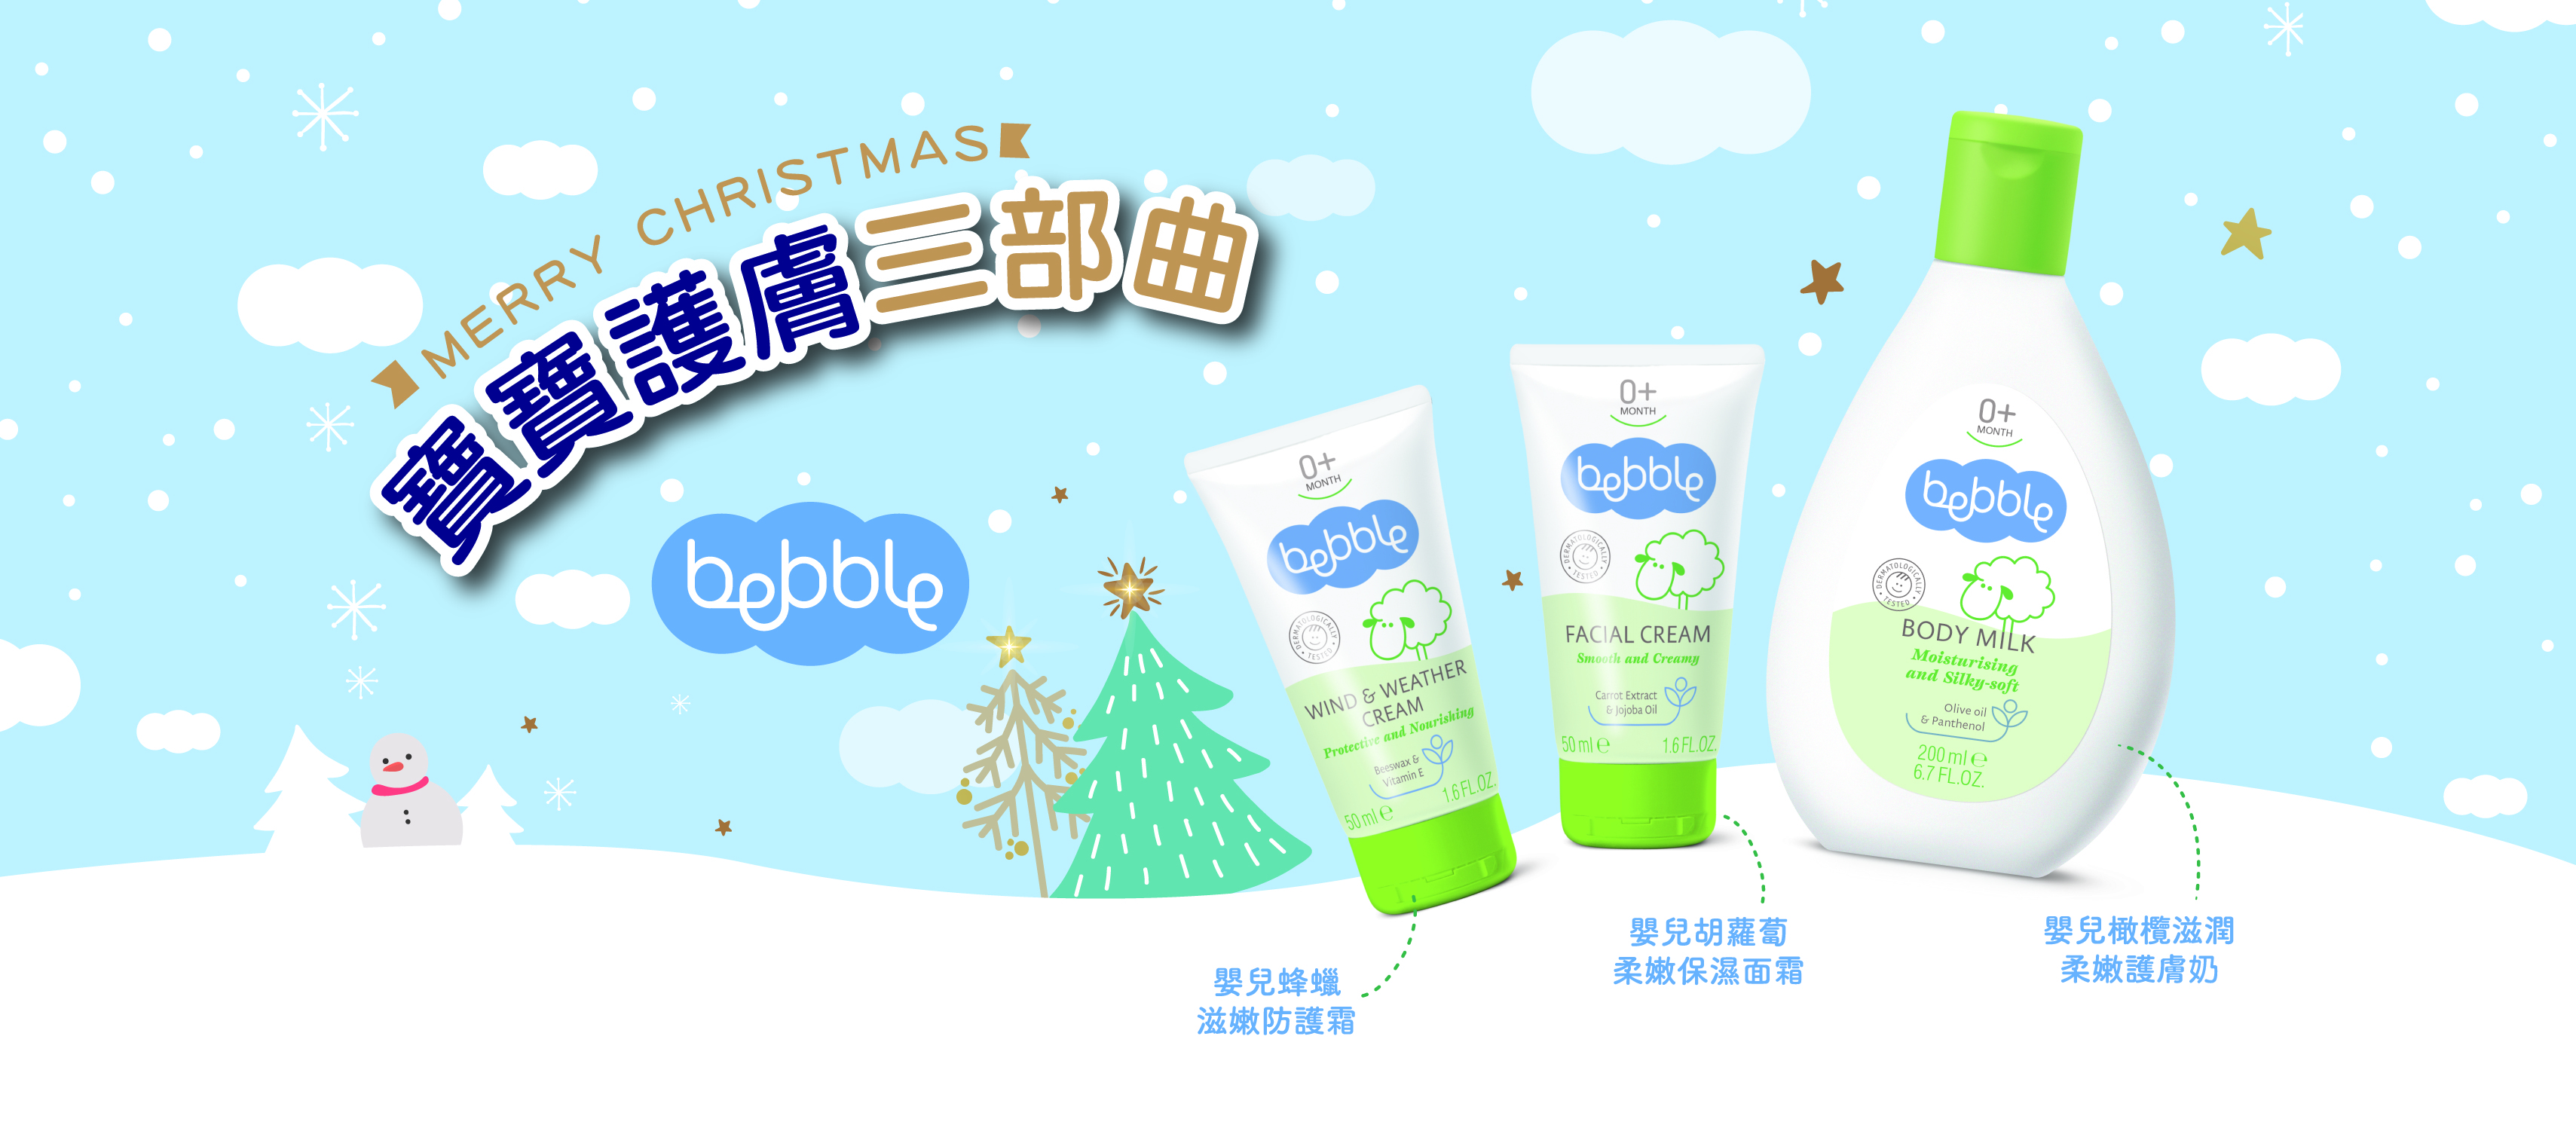 https://www.ardentradehk.com/products/bebble-bb面仔嫩滑組